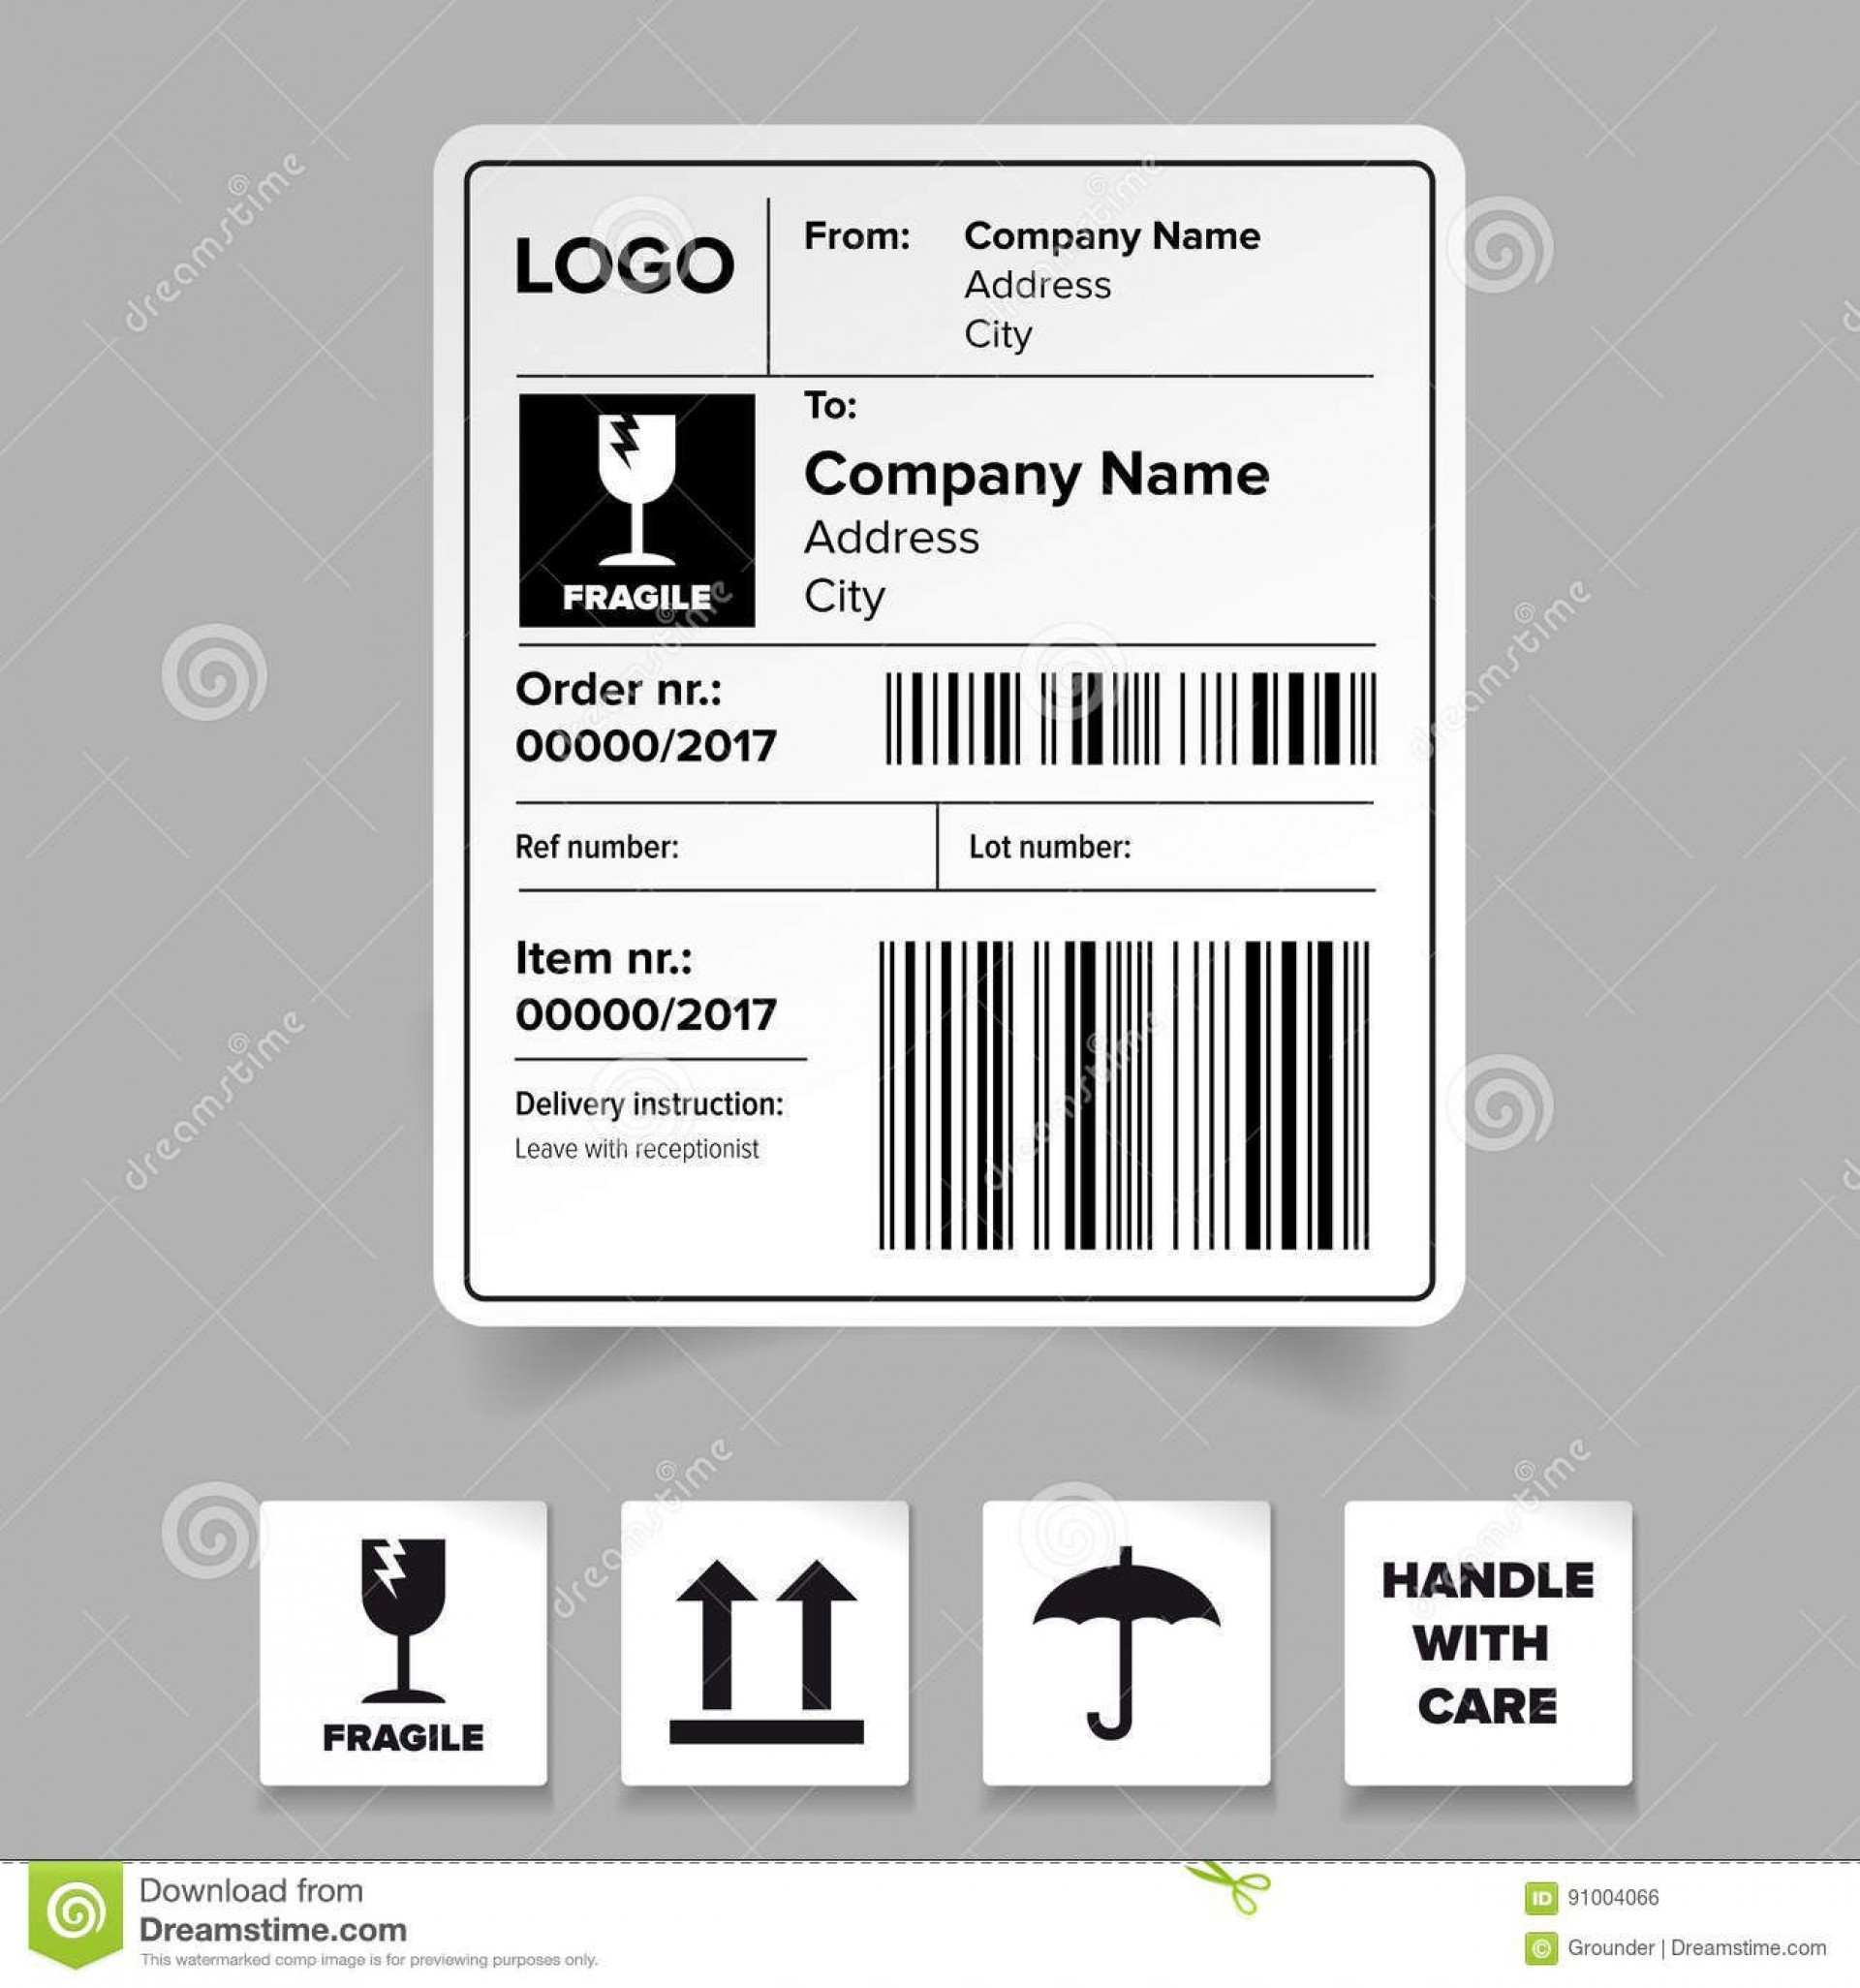 009 Unusual Free Shipping Label Format Sample 1920